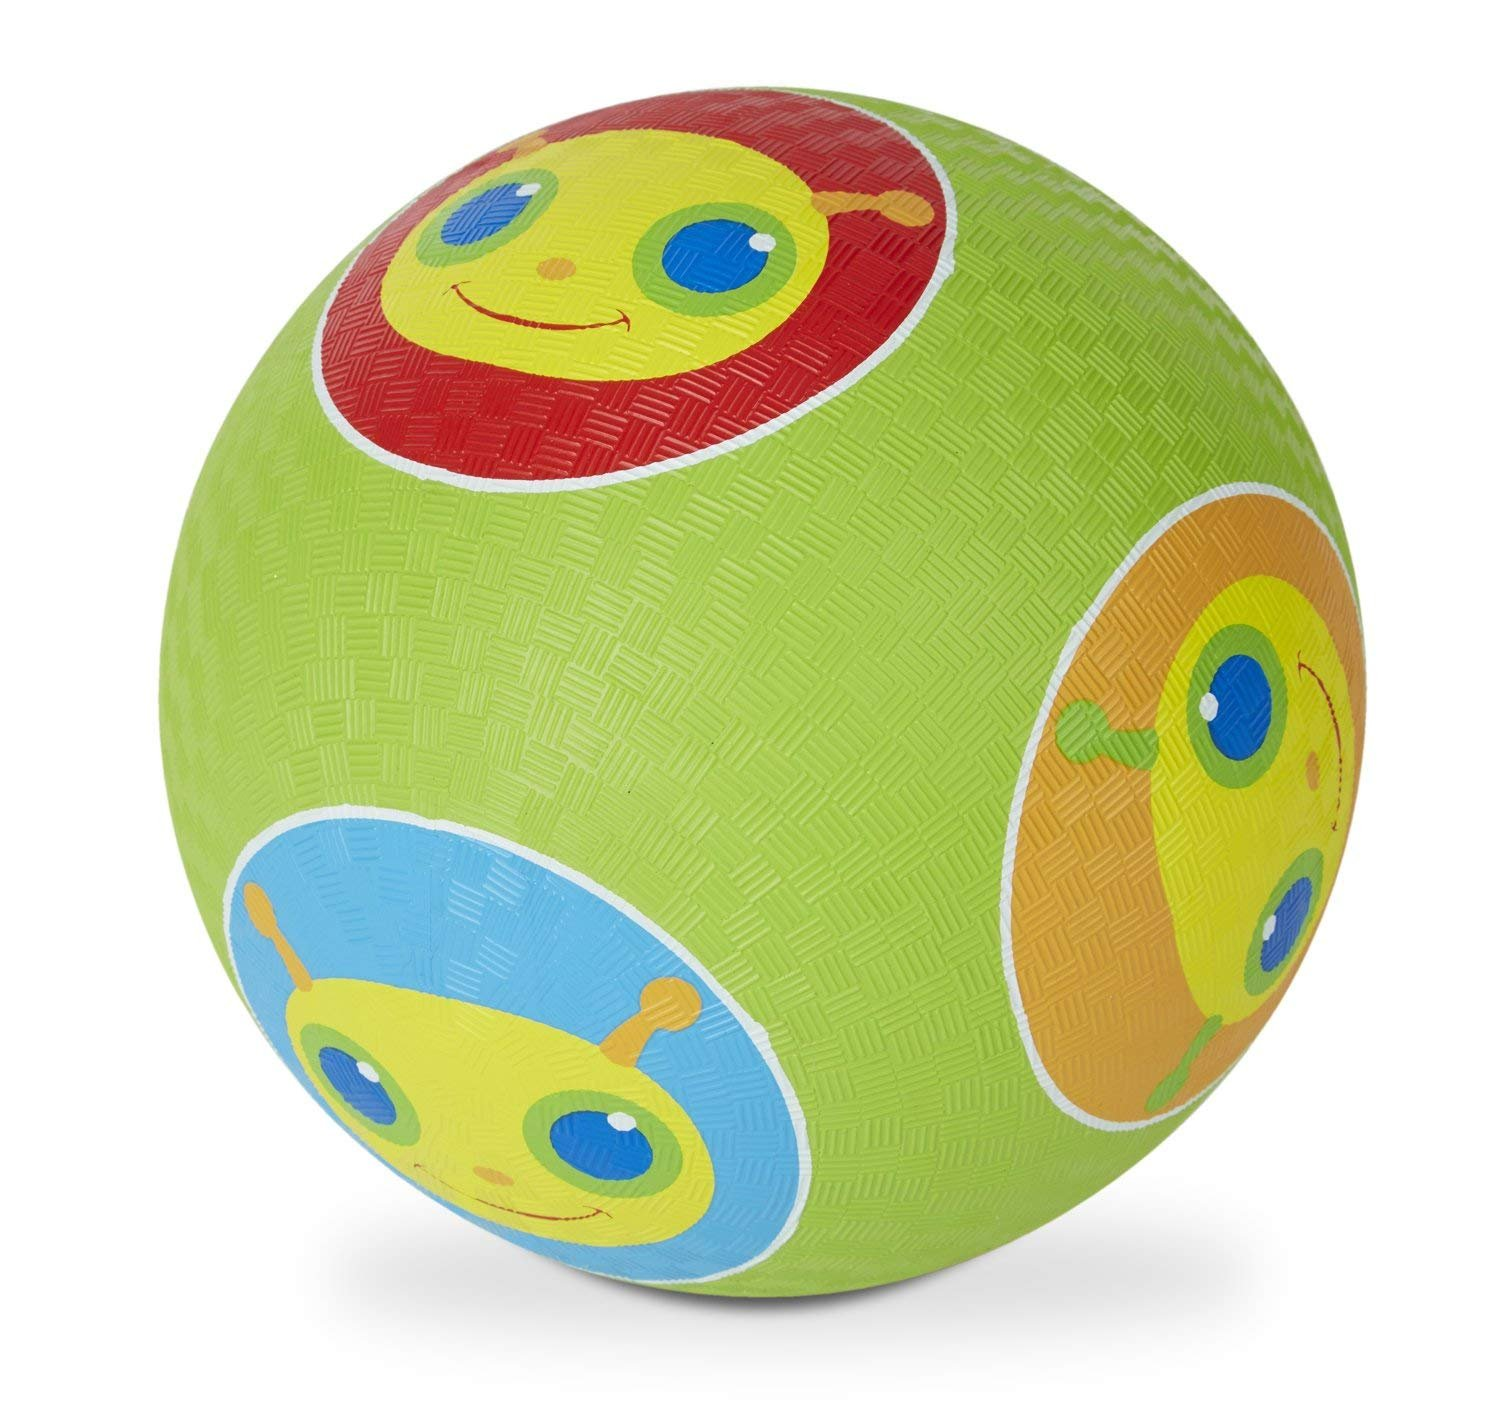 Melissa & Doug Kickball- Giddy Buggy